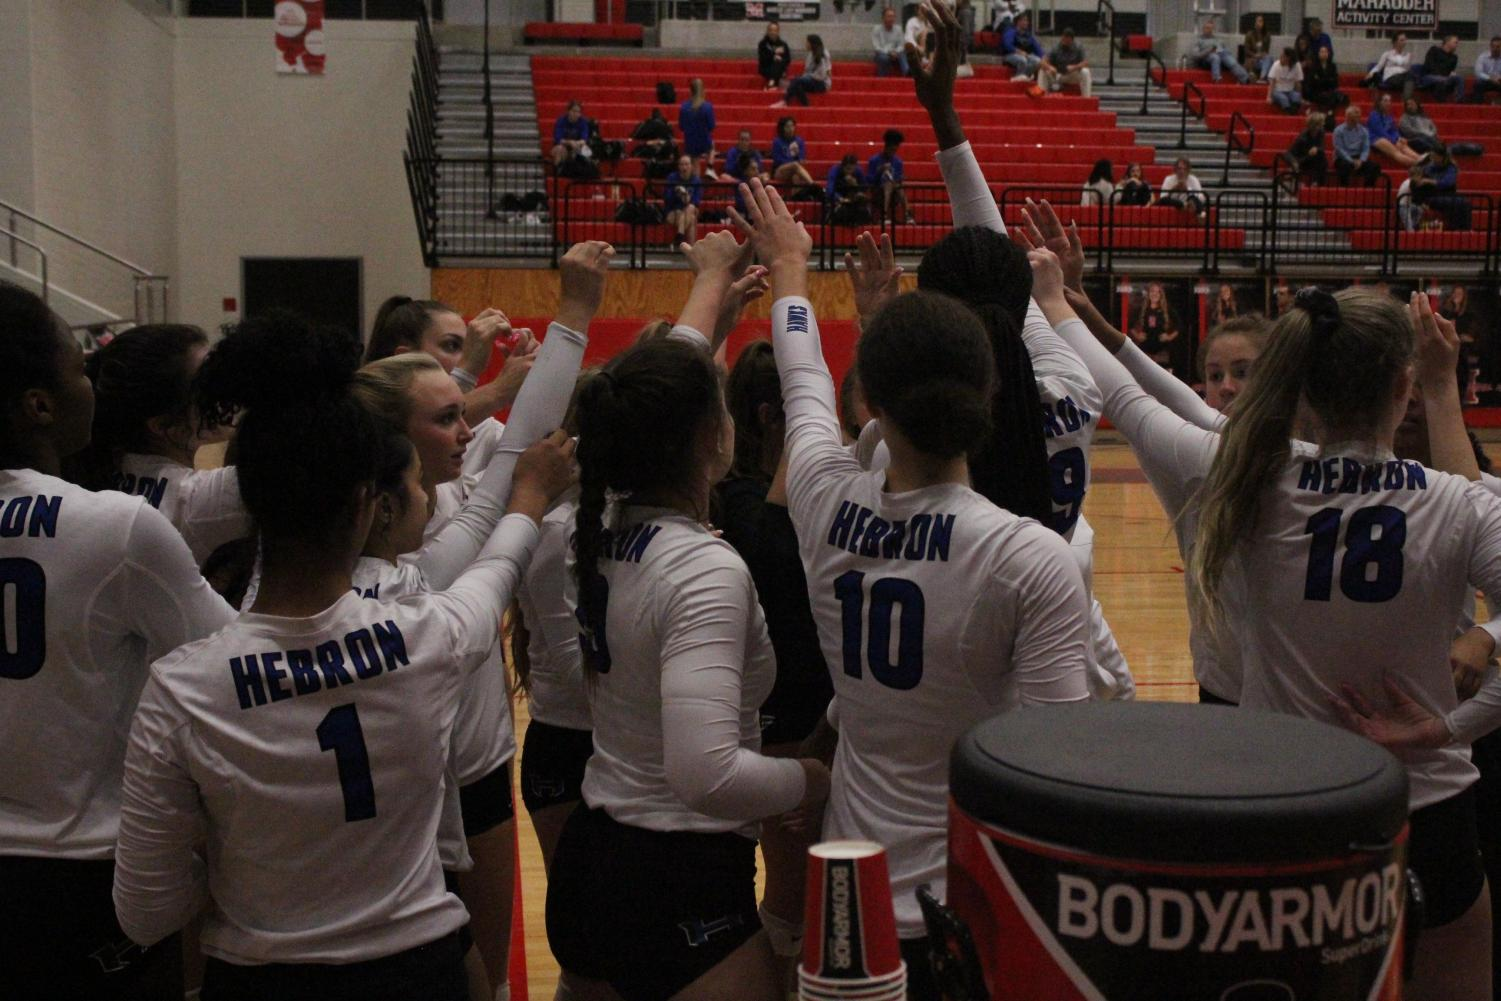 The volleyball team raises their hands and chant before their game against Marcus on Oct. 11. This is a tradition for the Hawks before they begin every game.